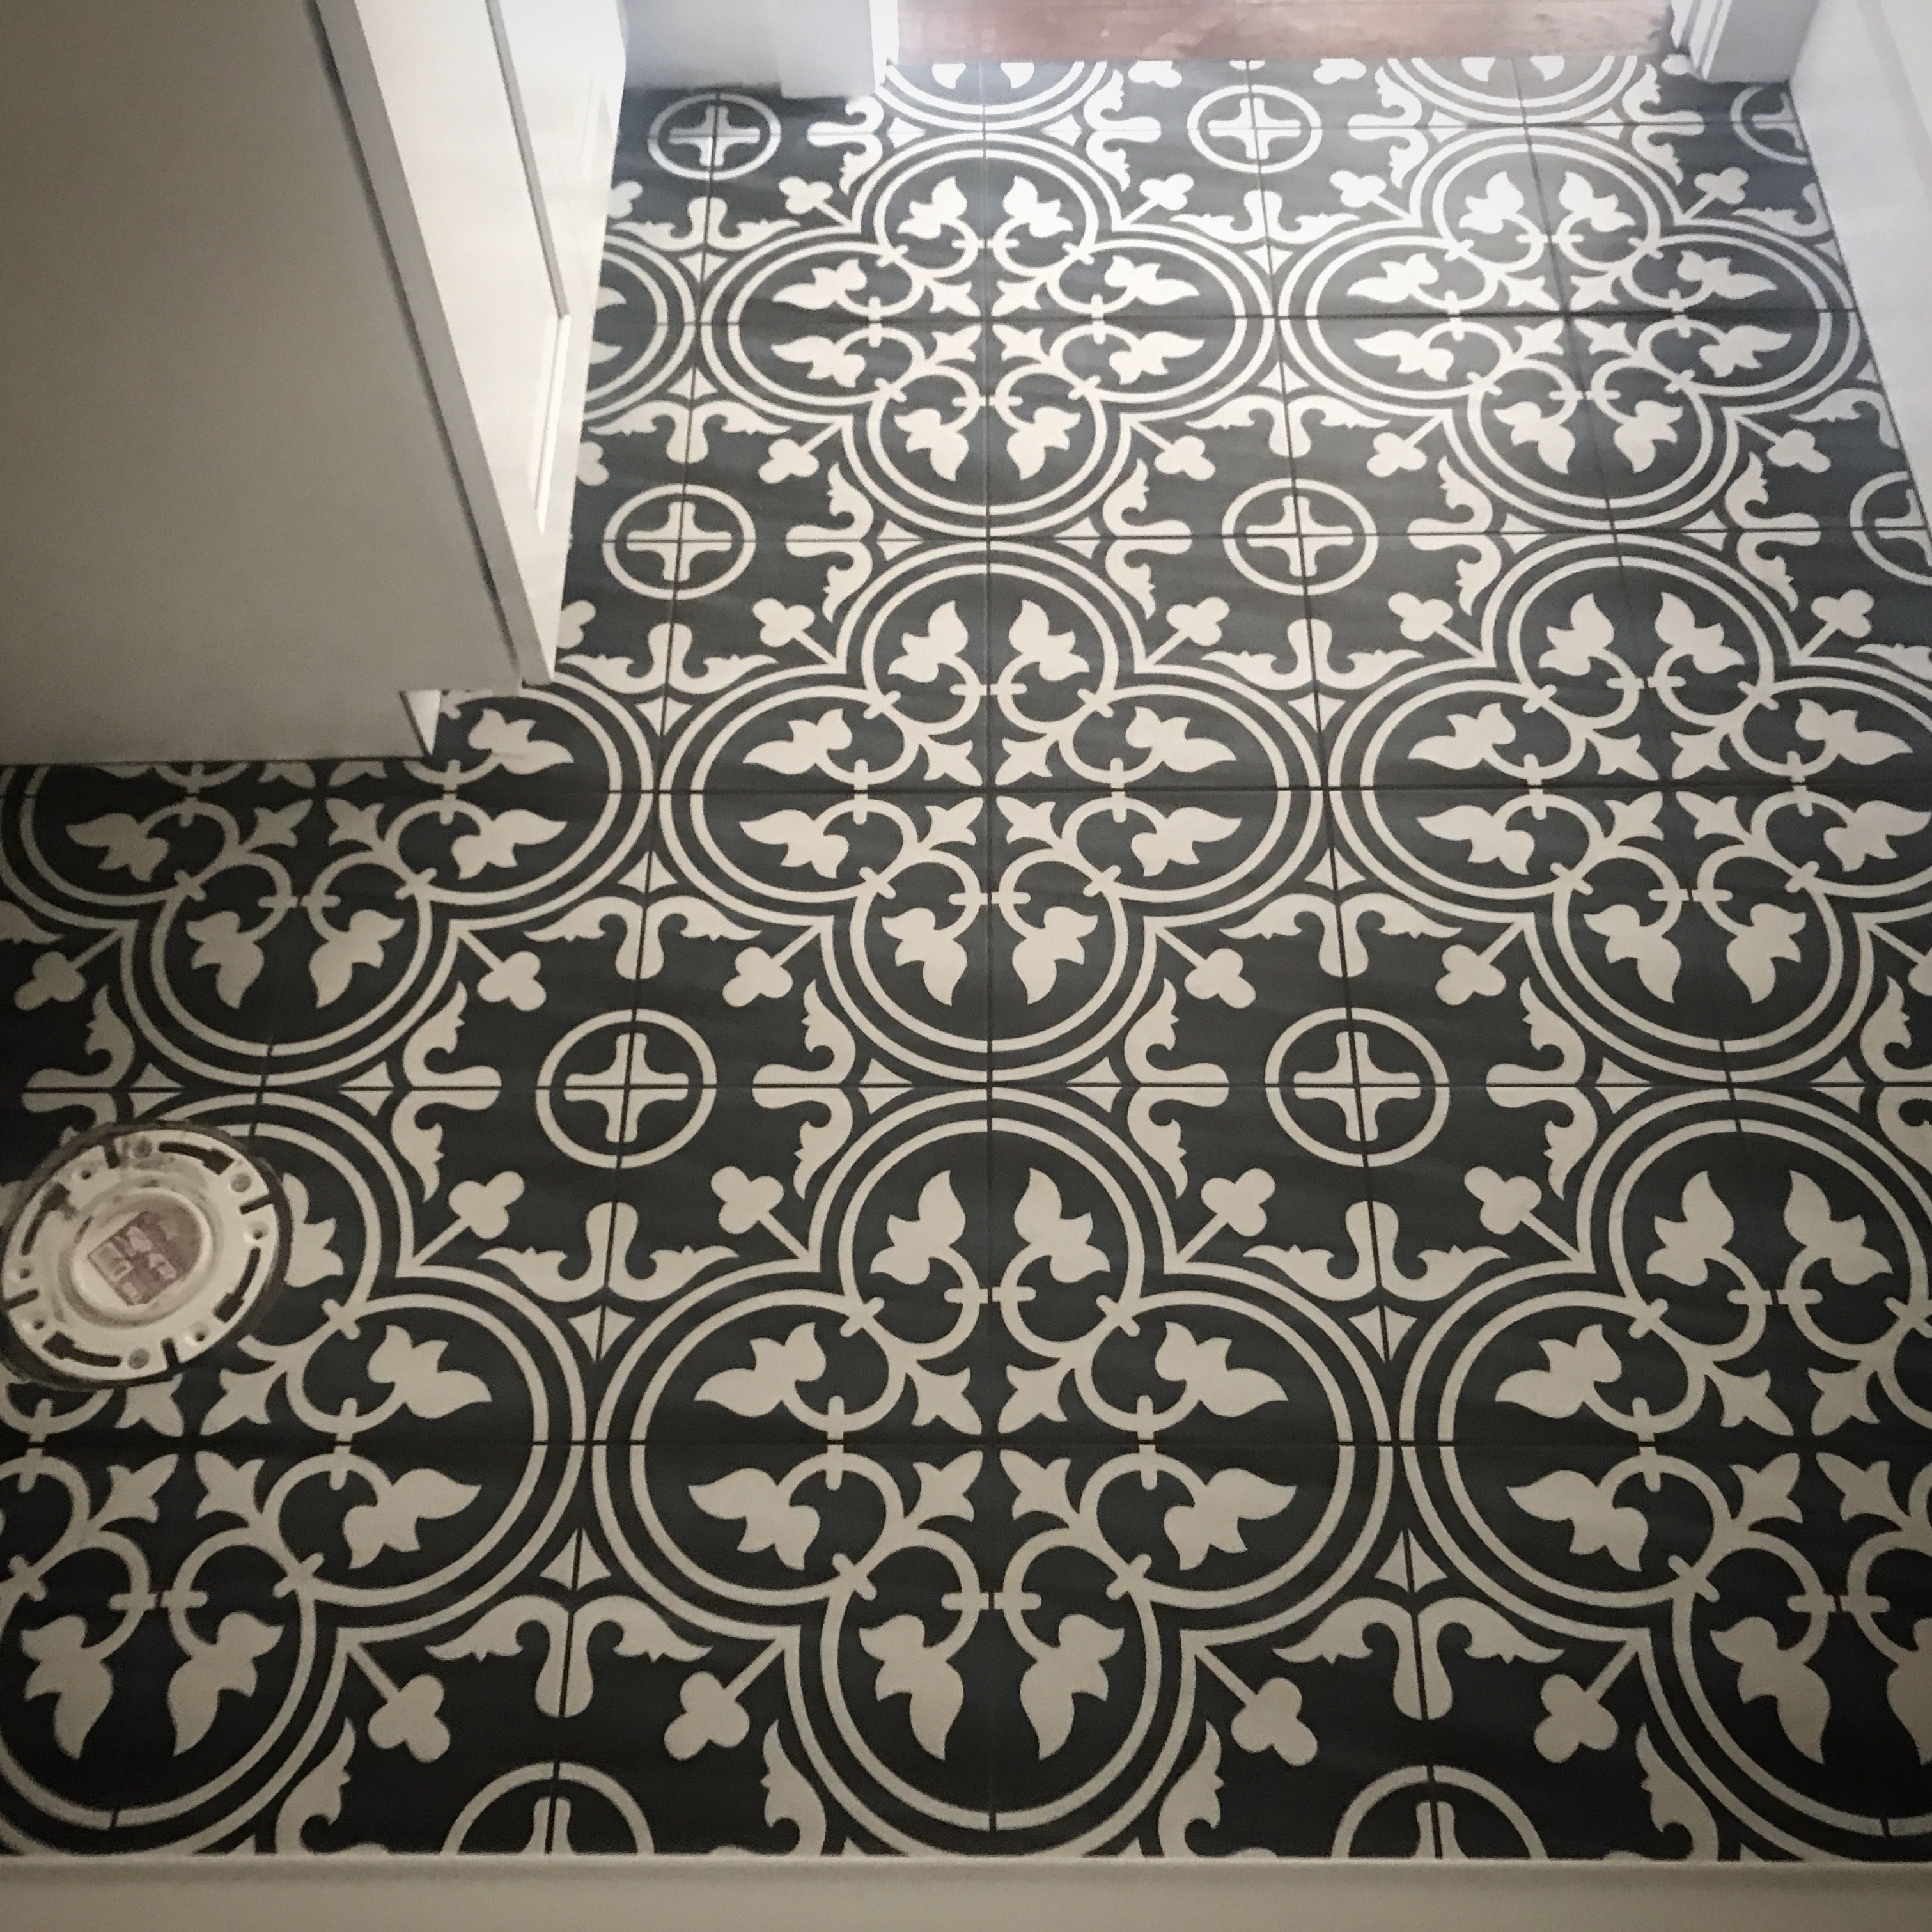 Black And White Patterned Tile With Black Grout From Joss And Main